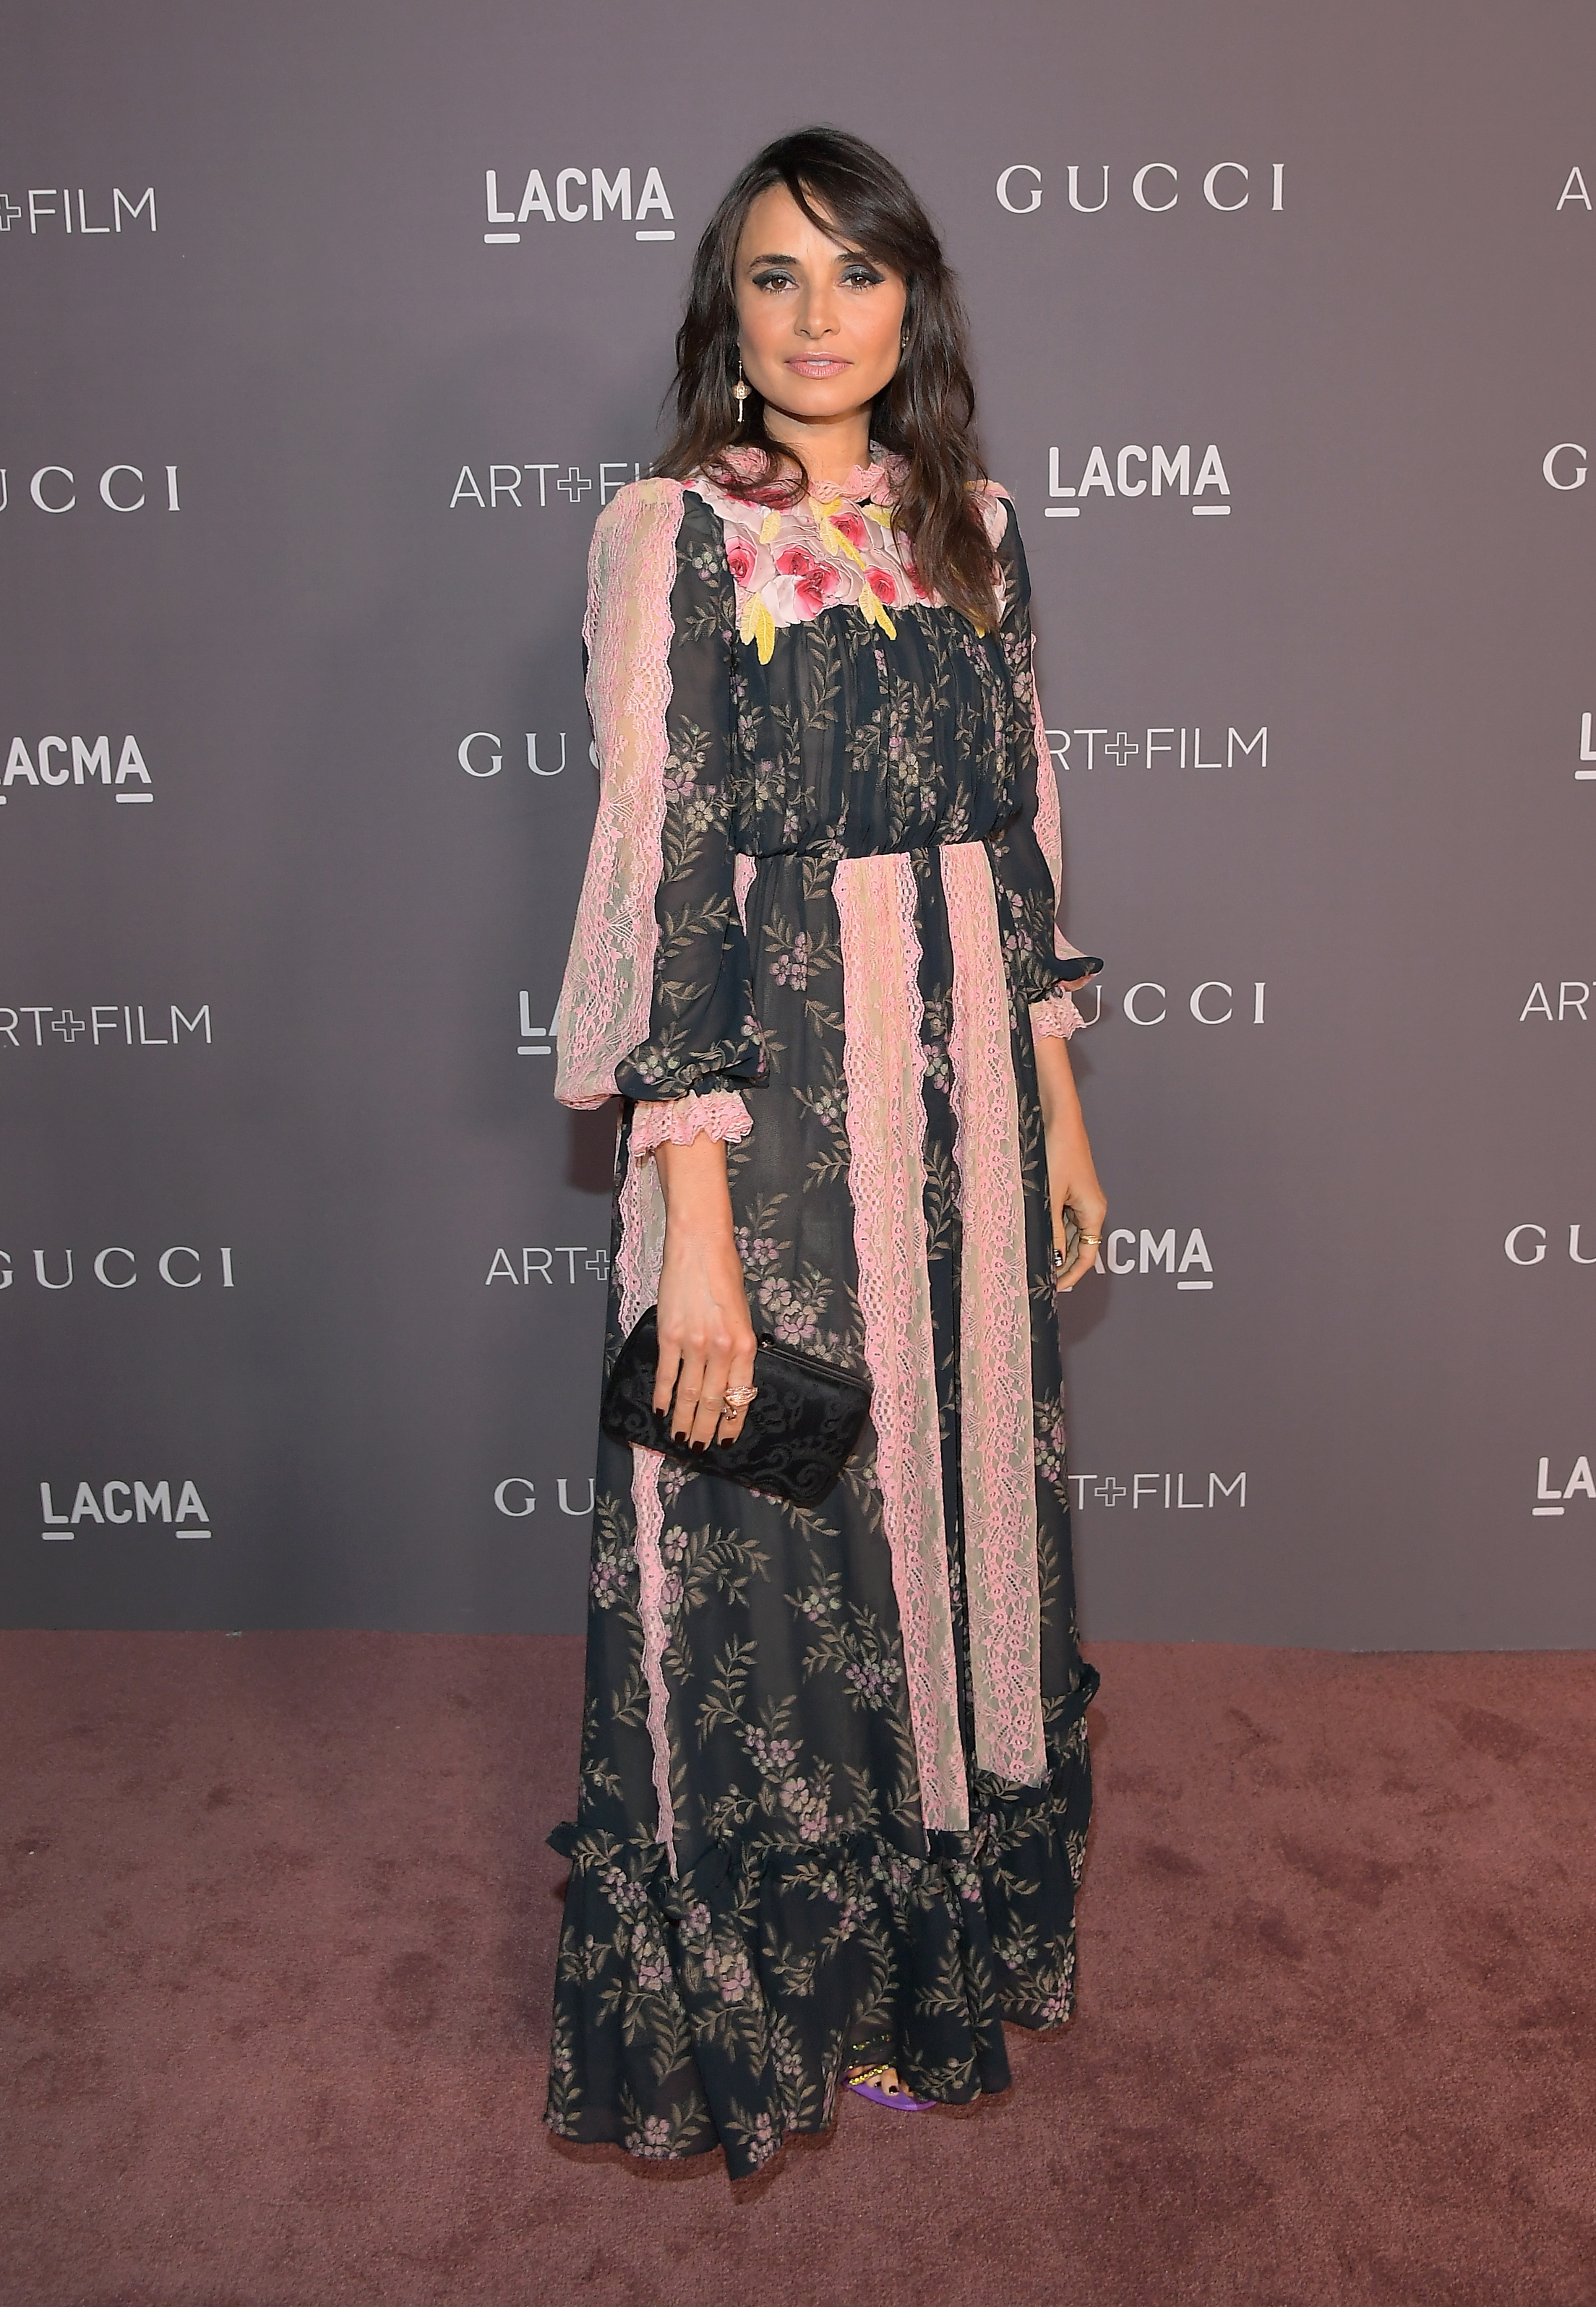 LOS ANGELES, CA - NOVEMBER 04: Actor Mia Maestro, wearing Gucci, attends the 2017 LACMA Art + Film Gala Honoring Mark Bradford and George Lucas presented by Gucci at LACMA on November 4, 2017 in Los Angeles, California. (Photo by Charley Gallay/Getty Images for LACMA)